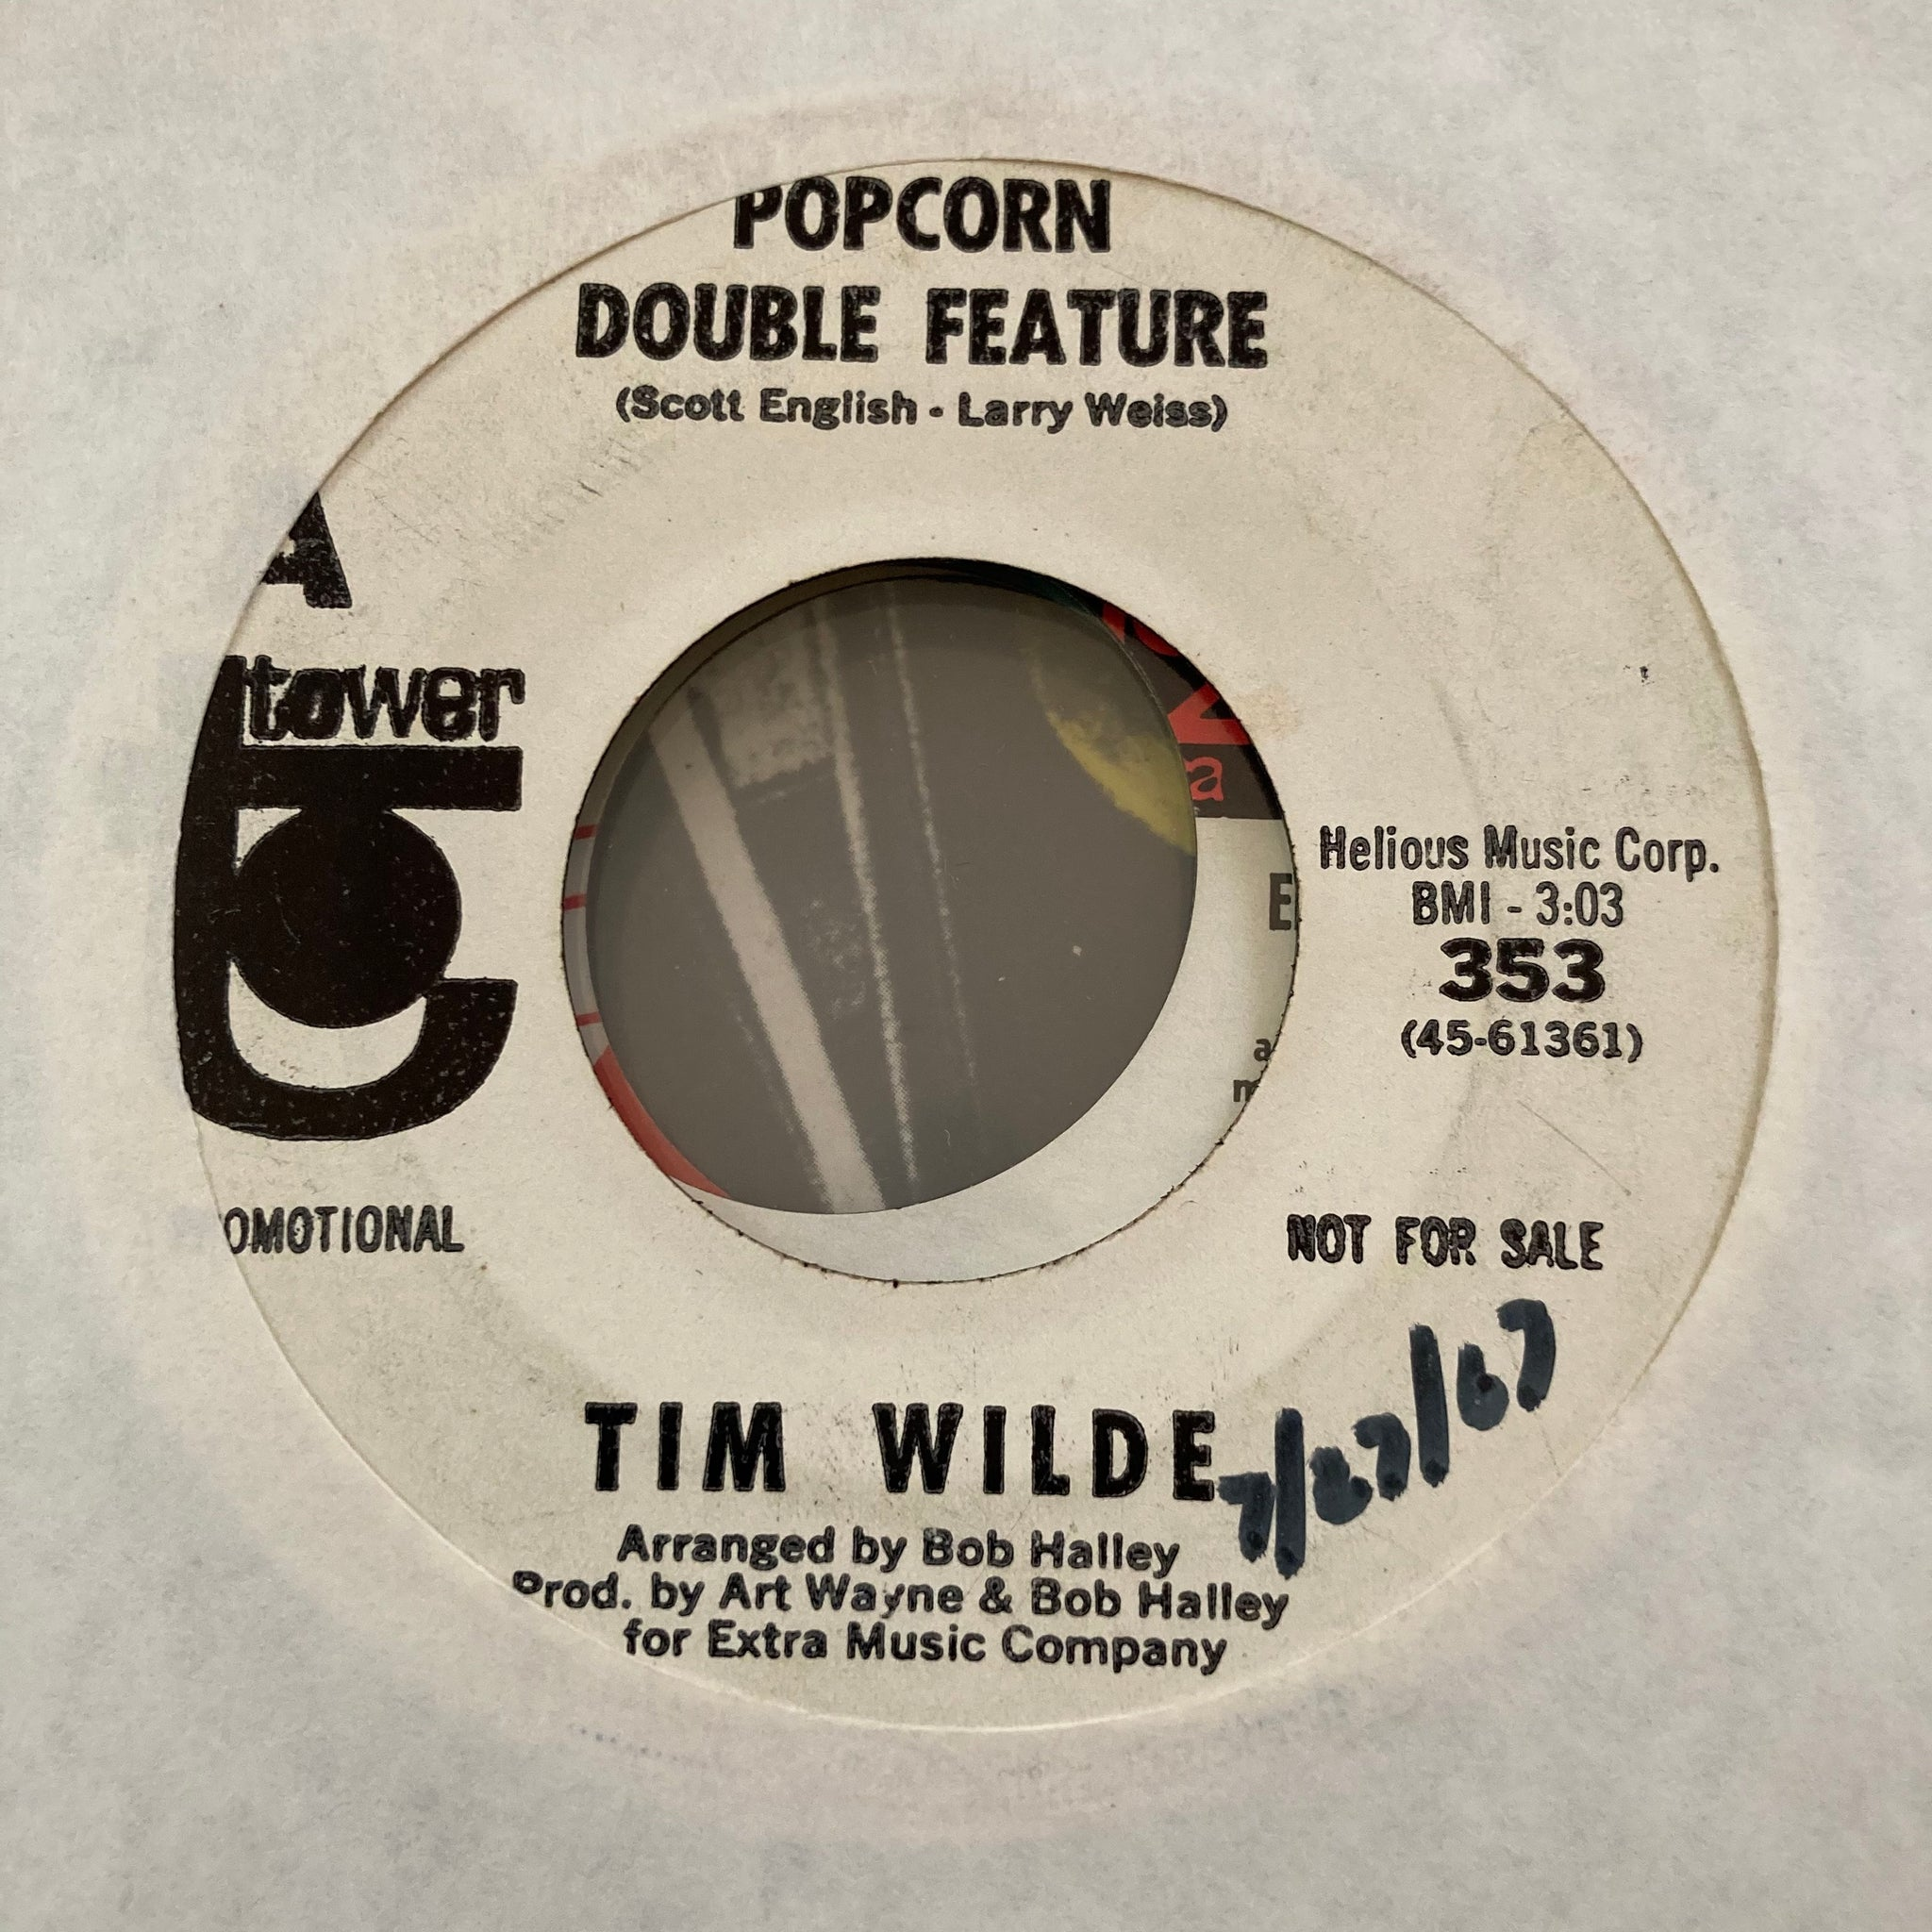 Tim Wilde - Popcorn Double Feature (Used LP)